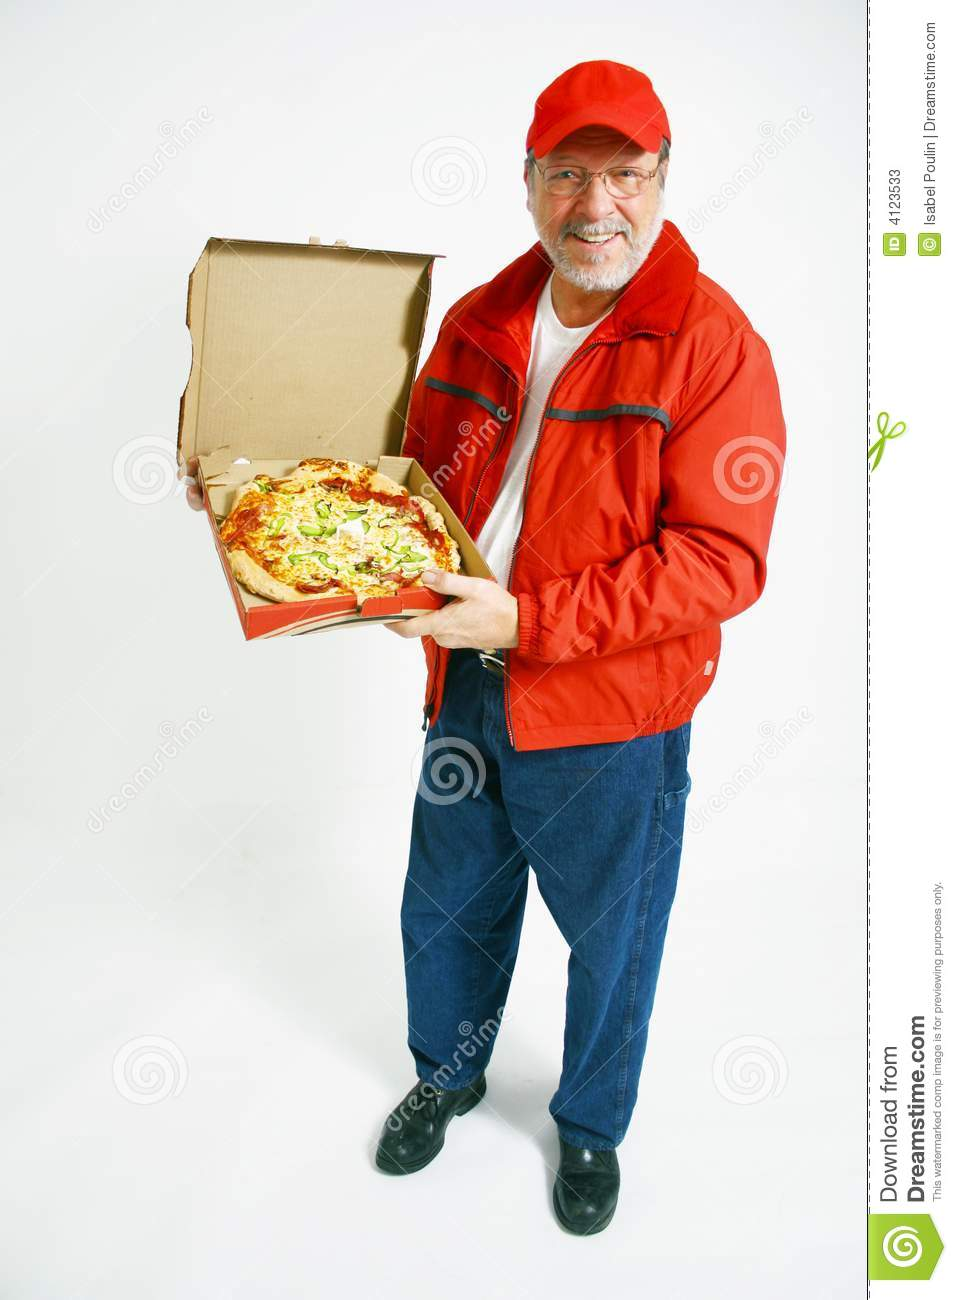 Pizza Delivery Man In Uniform Stock Photos - Image: 4123533